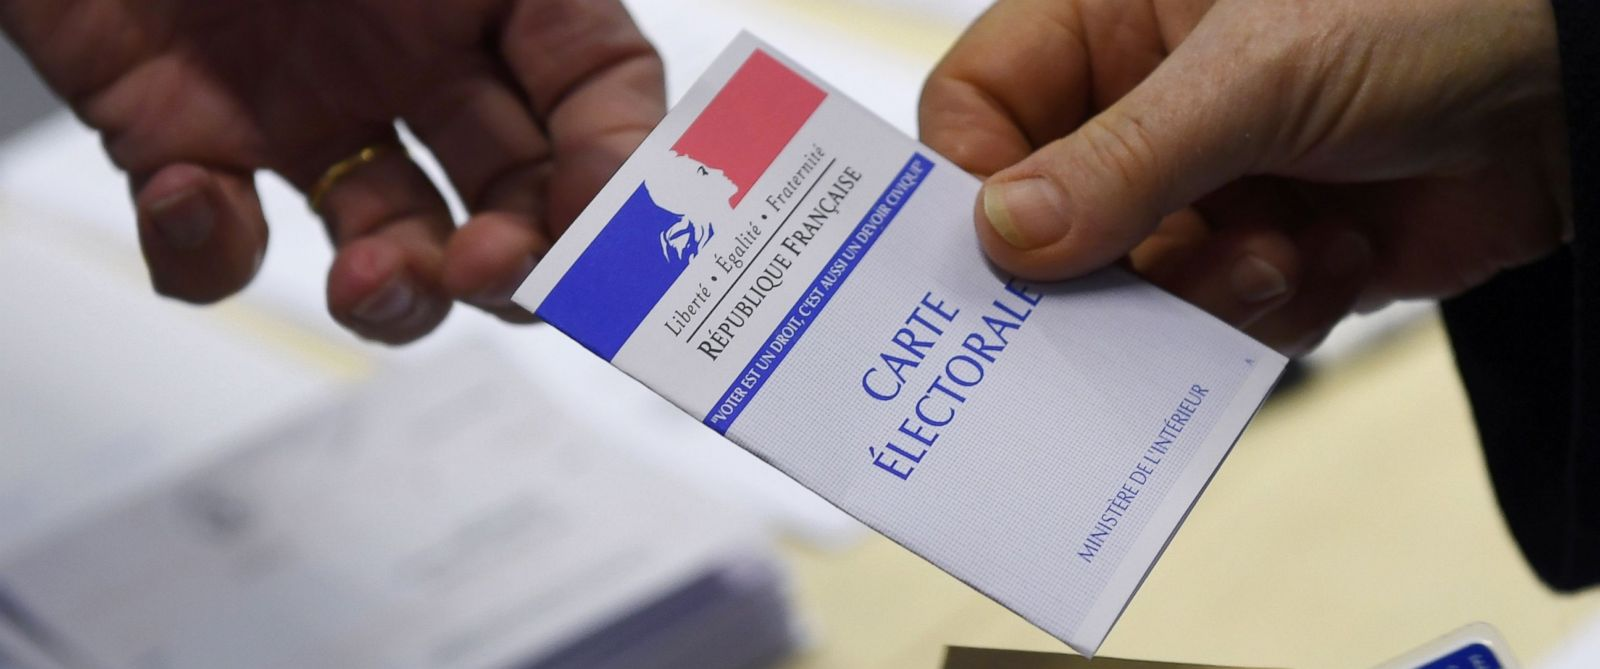 PHOTO: A woman shows her electoral ID before voting at a polling station in Rennes, western France, during the first round of the French presidential election, April 23, 2017.